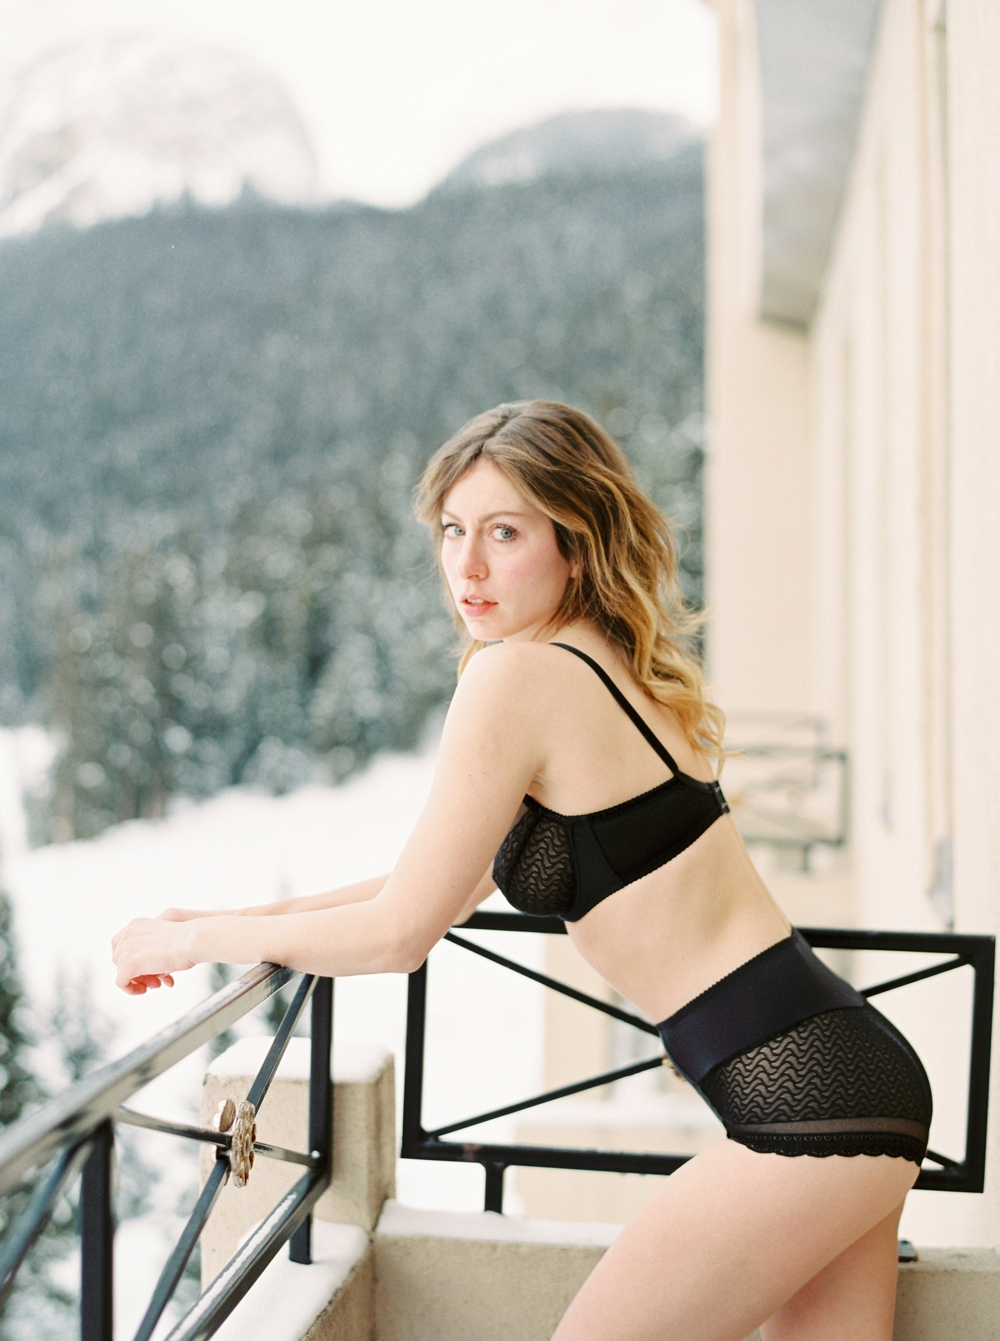 Calgary Boudoir Photographers | Life Set Sail | Fashion Photographer Blogger | Justine Milton Photography | Fairmont Chateau Lake Louise